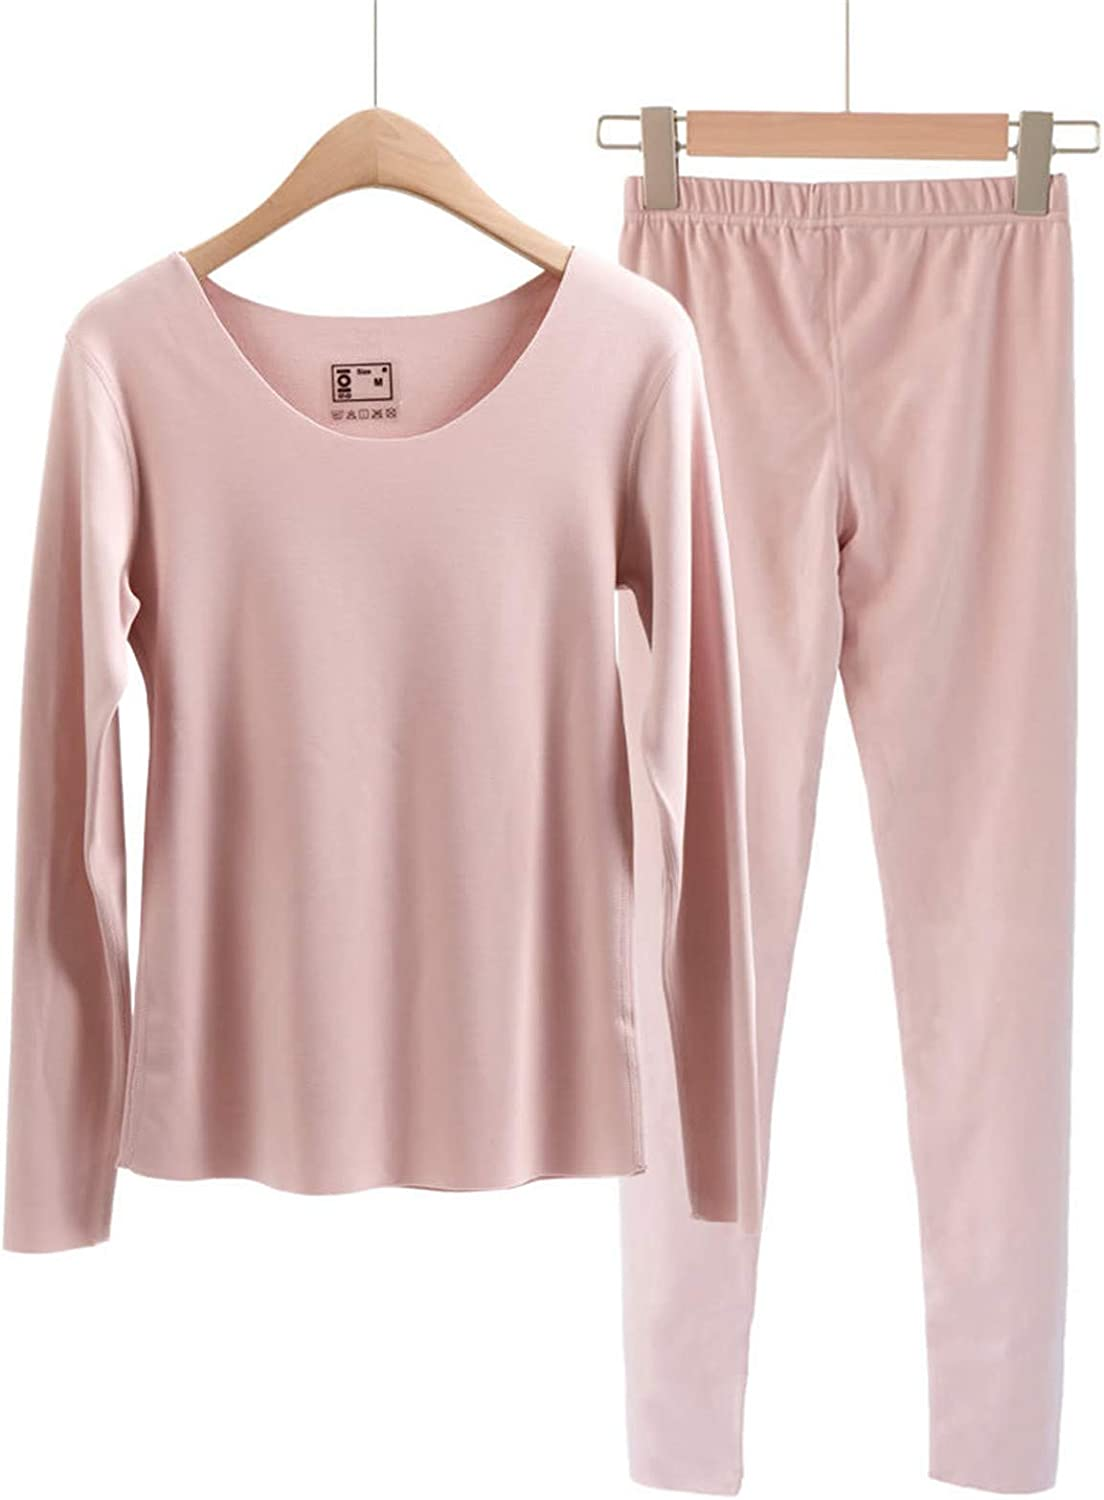 GQFGYYL Fashion Seamless Thermal Underwear Set, Ultra Soft Top & Bottom Base Layer Long Winer Warm with Fleece Lined,Pink,L